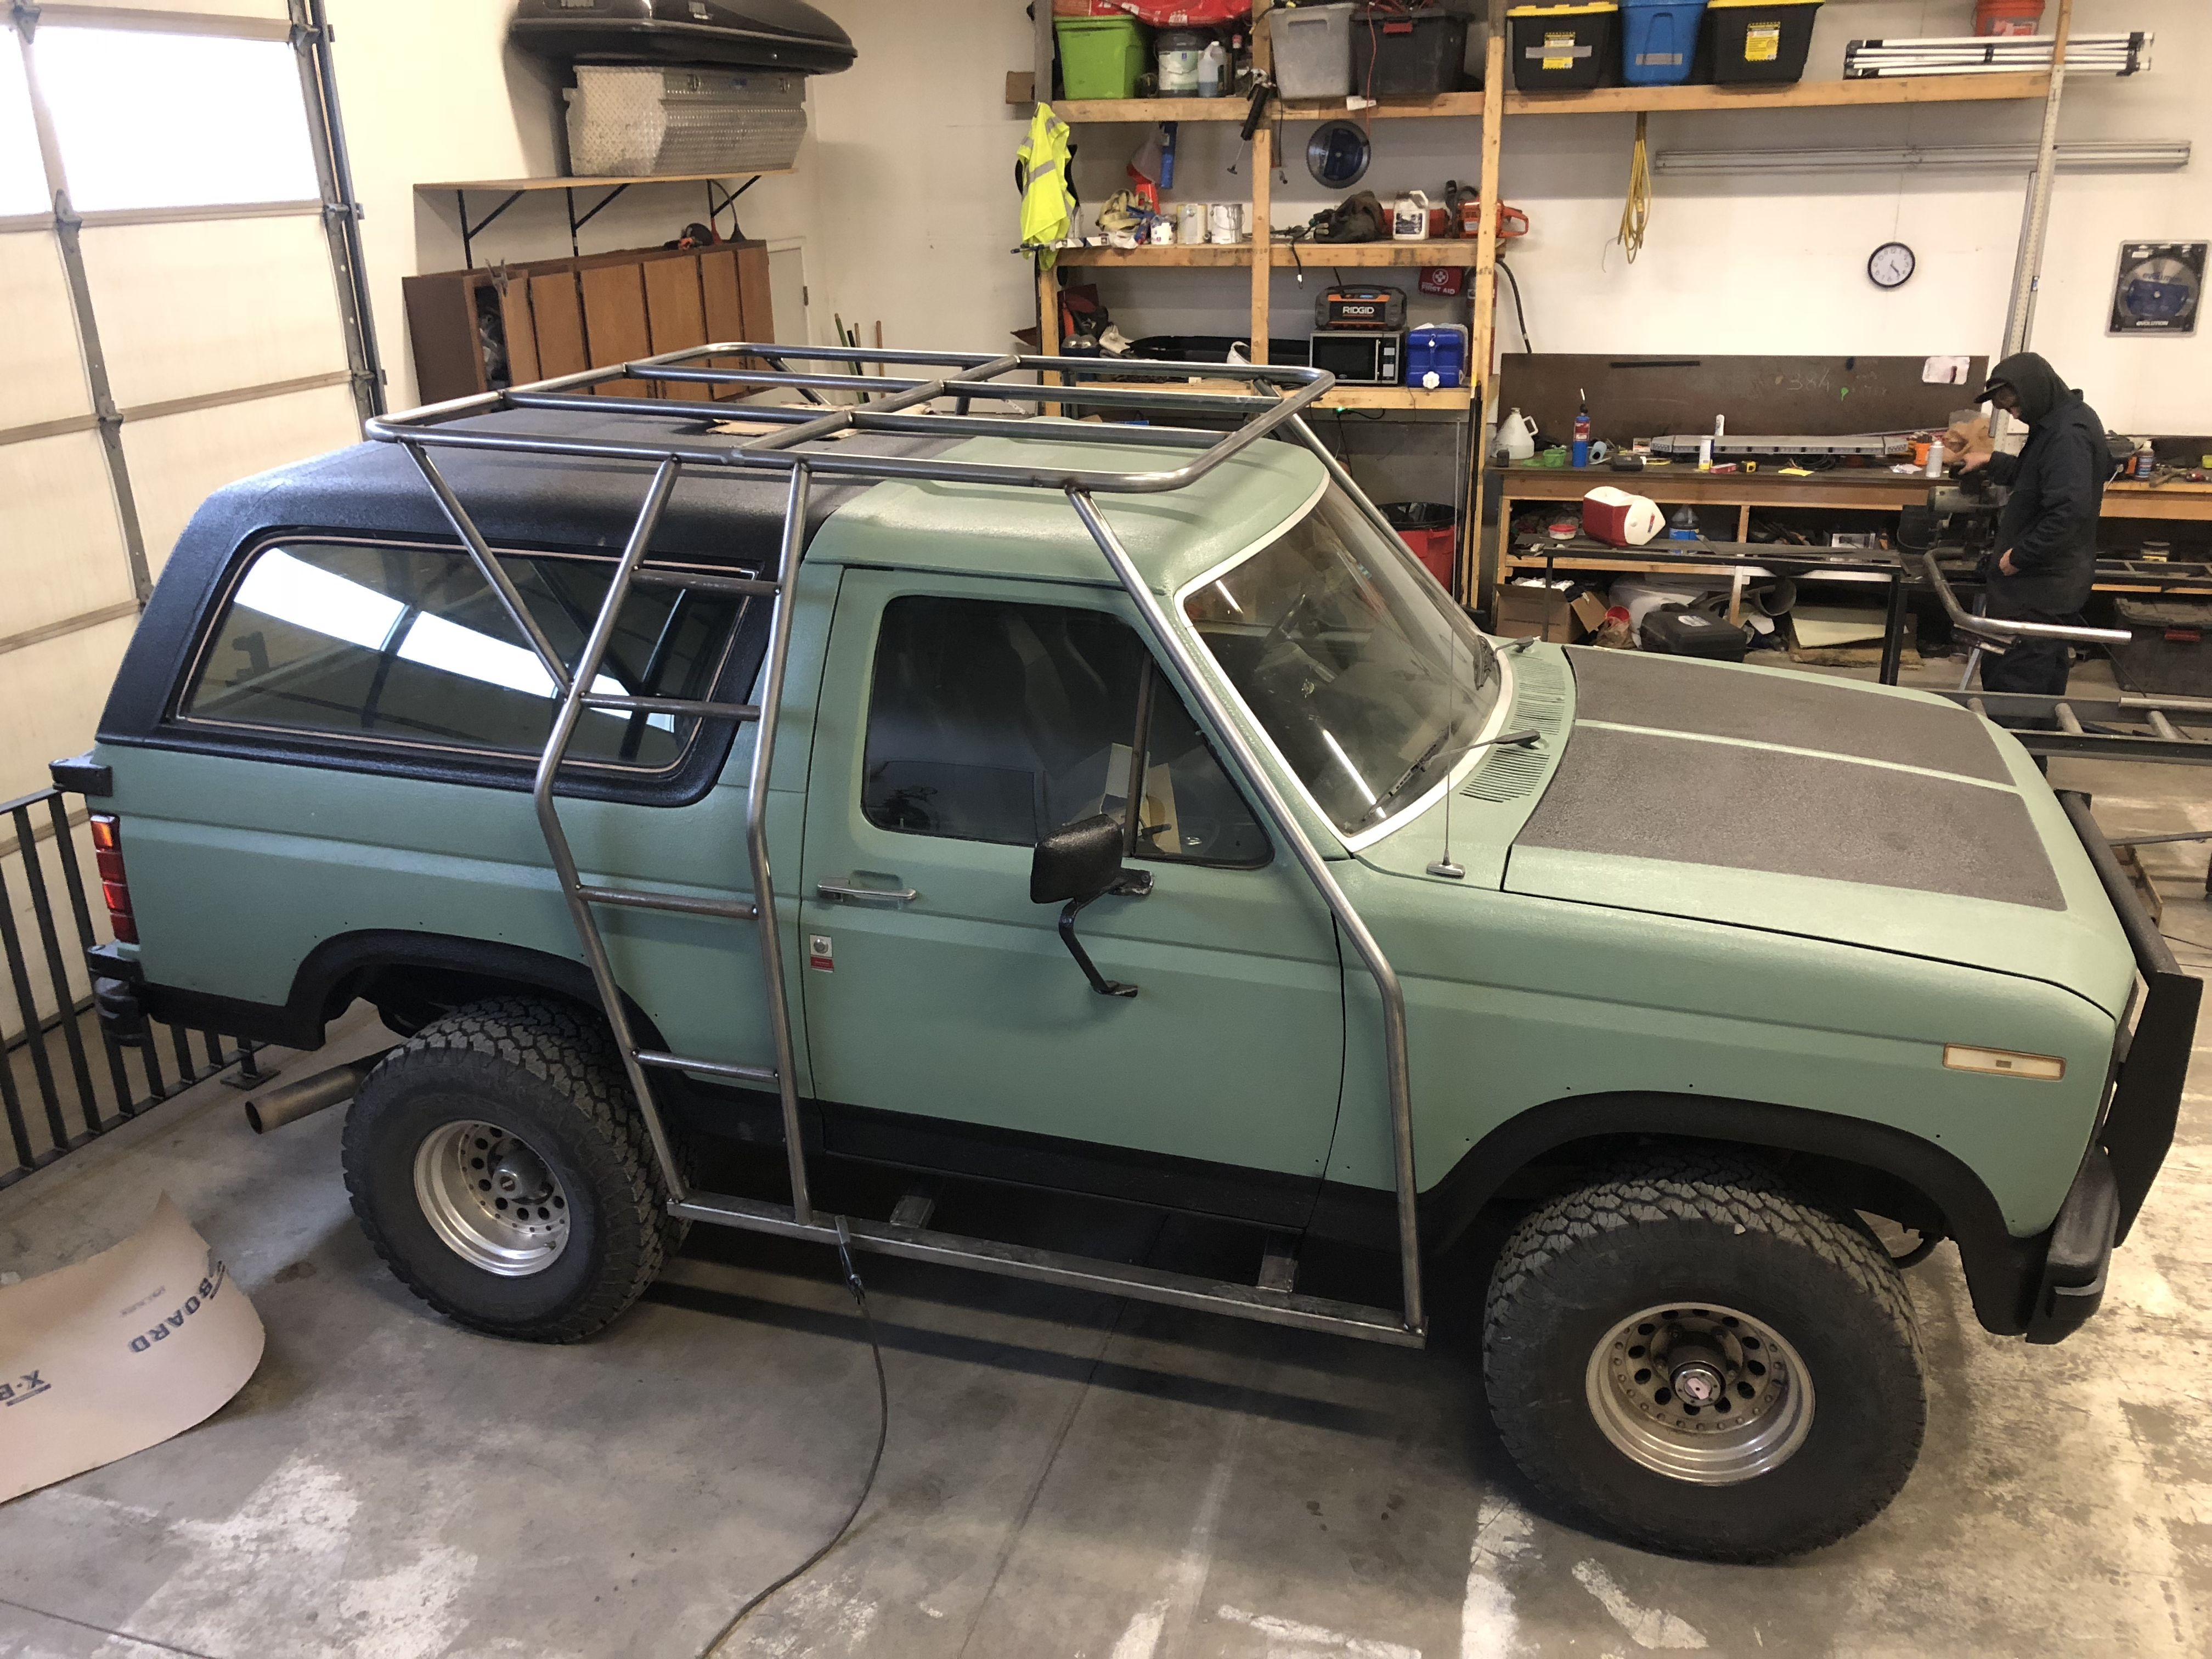 Pin By Albert Gonzalez On Binder Built S Projects Ford Bronco Ford Pickup Trucks Ford Trucks